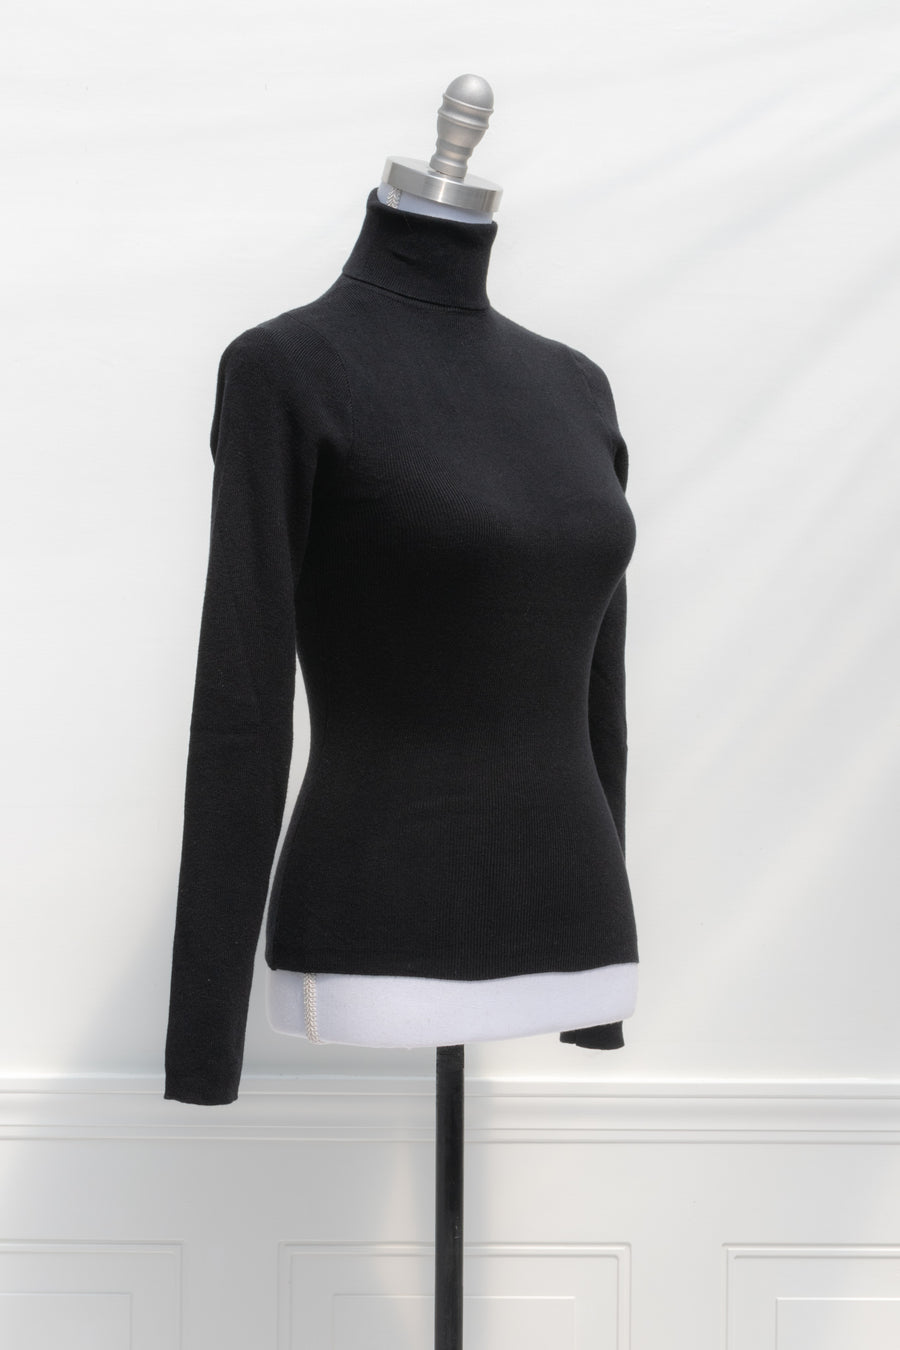 Ribbed black turtleneck sweater top soft french classic style romantic